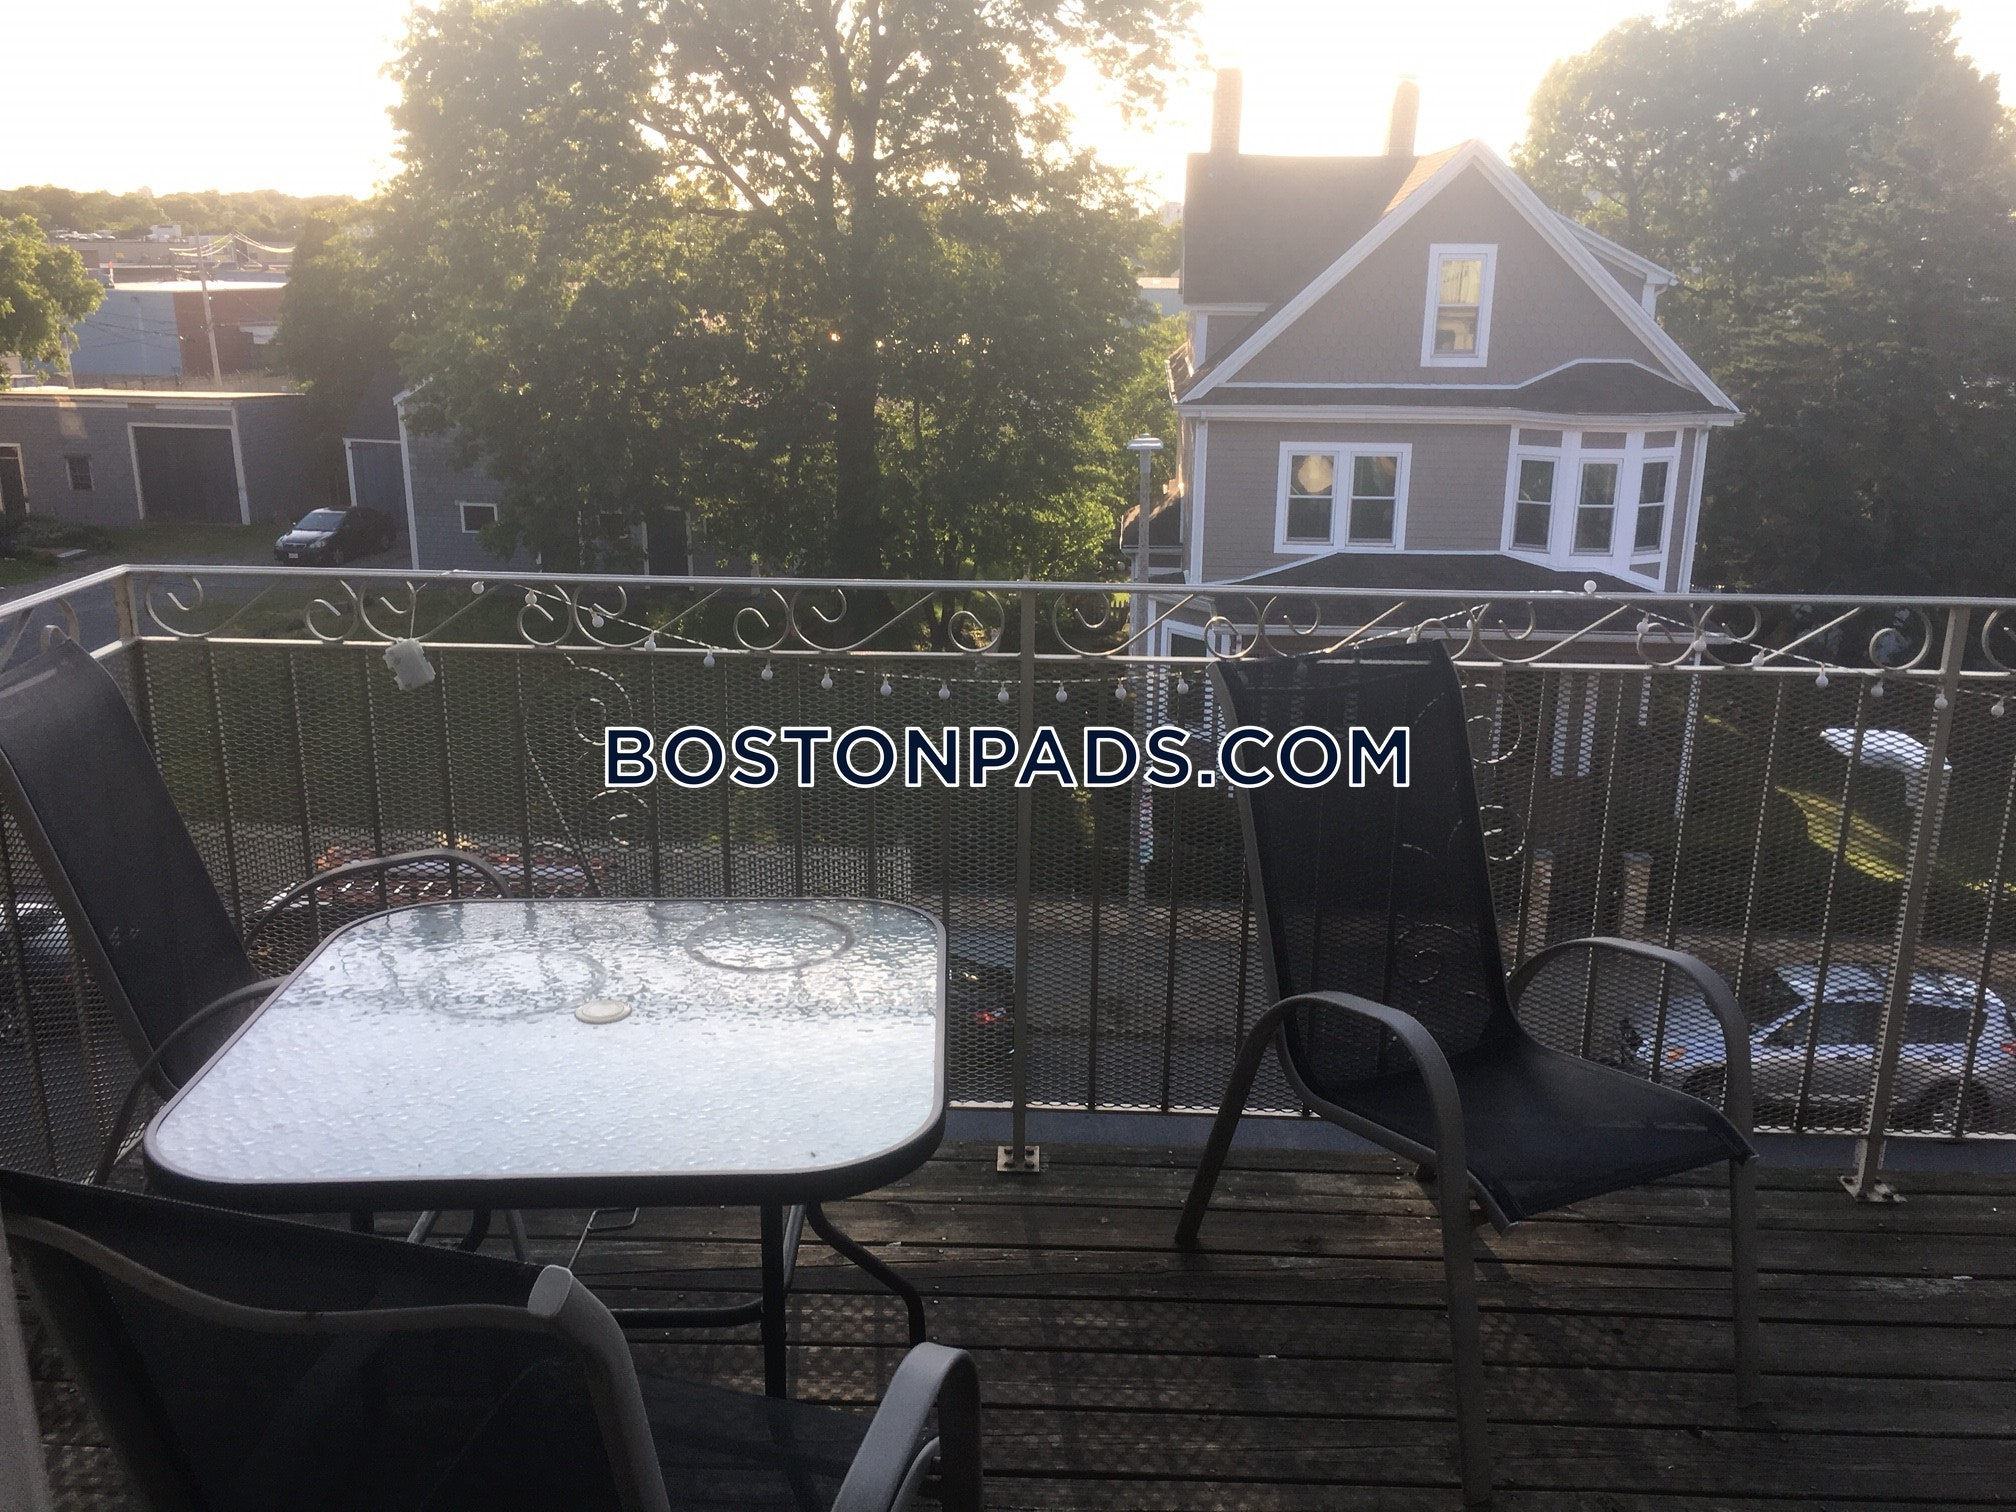 4 Beds 1 Bath - Boston - Dorchester/south Boston Border $3,350